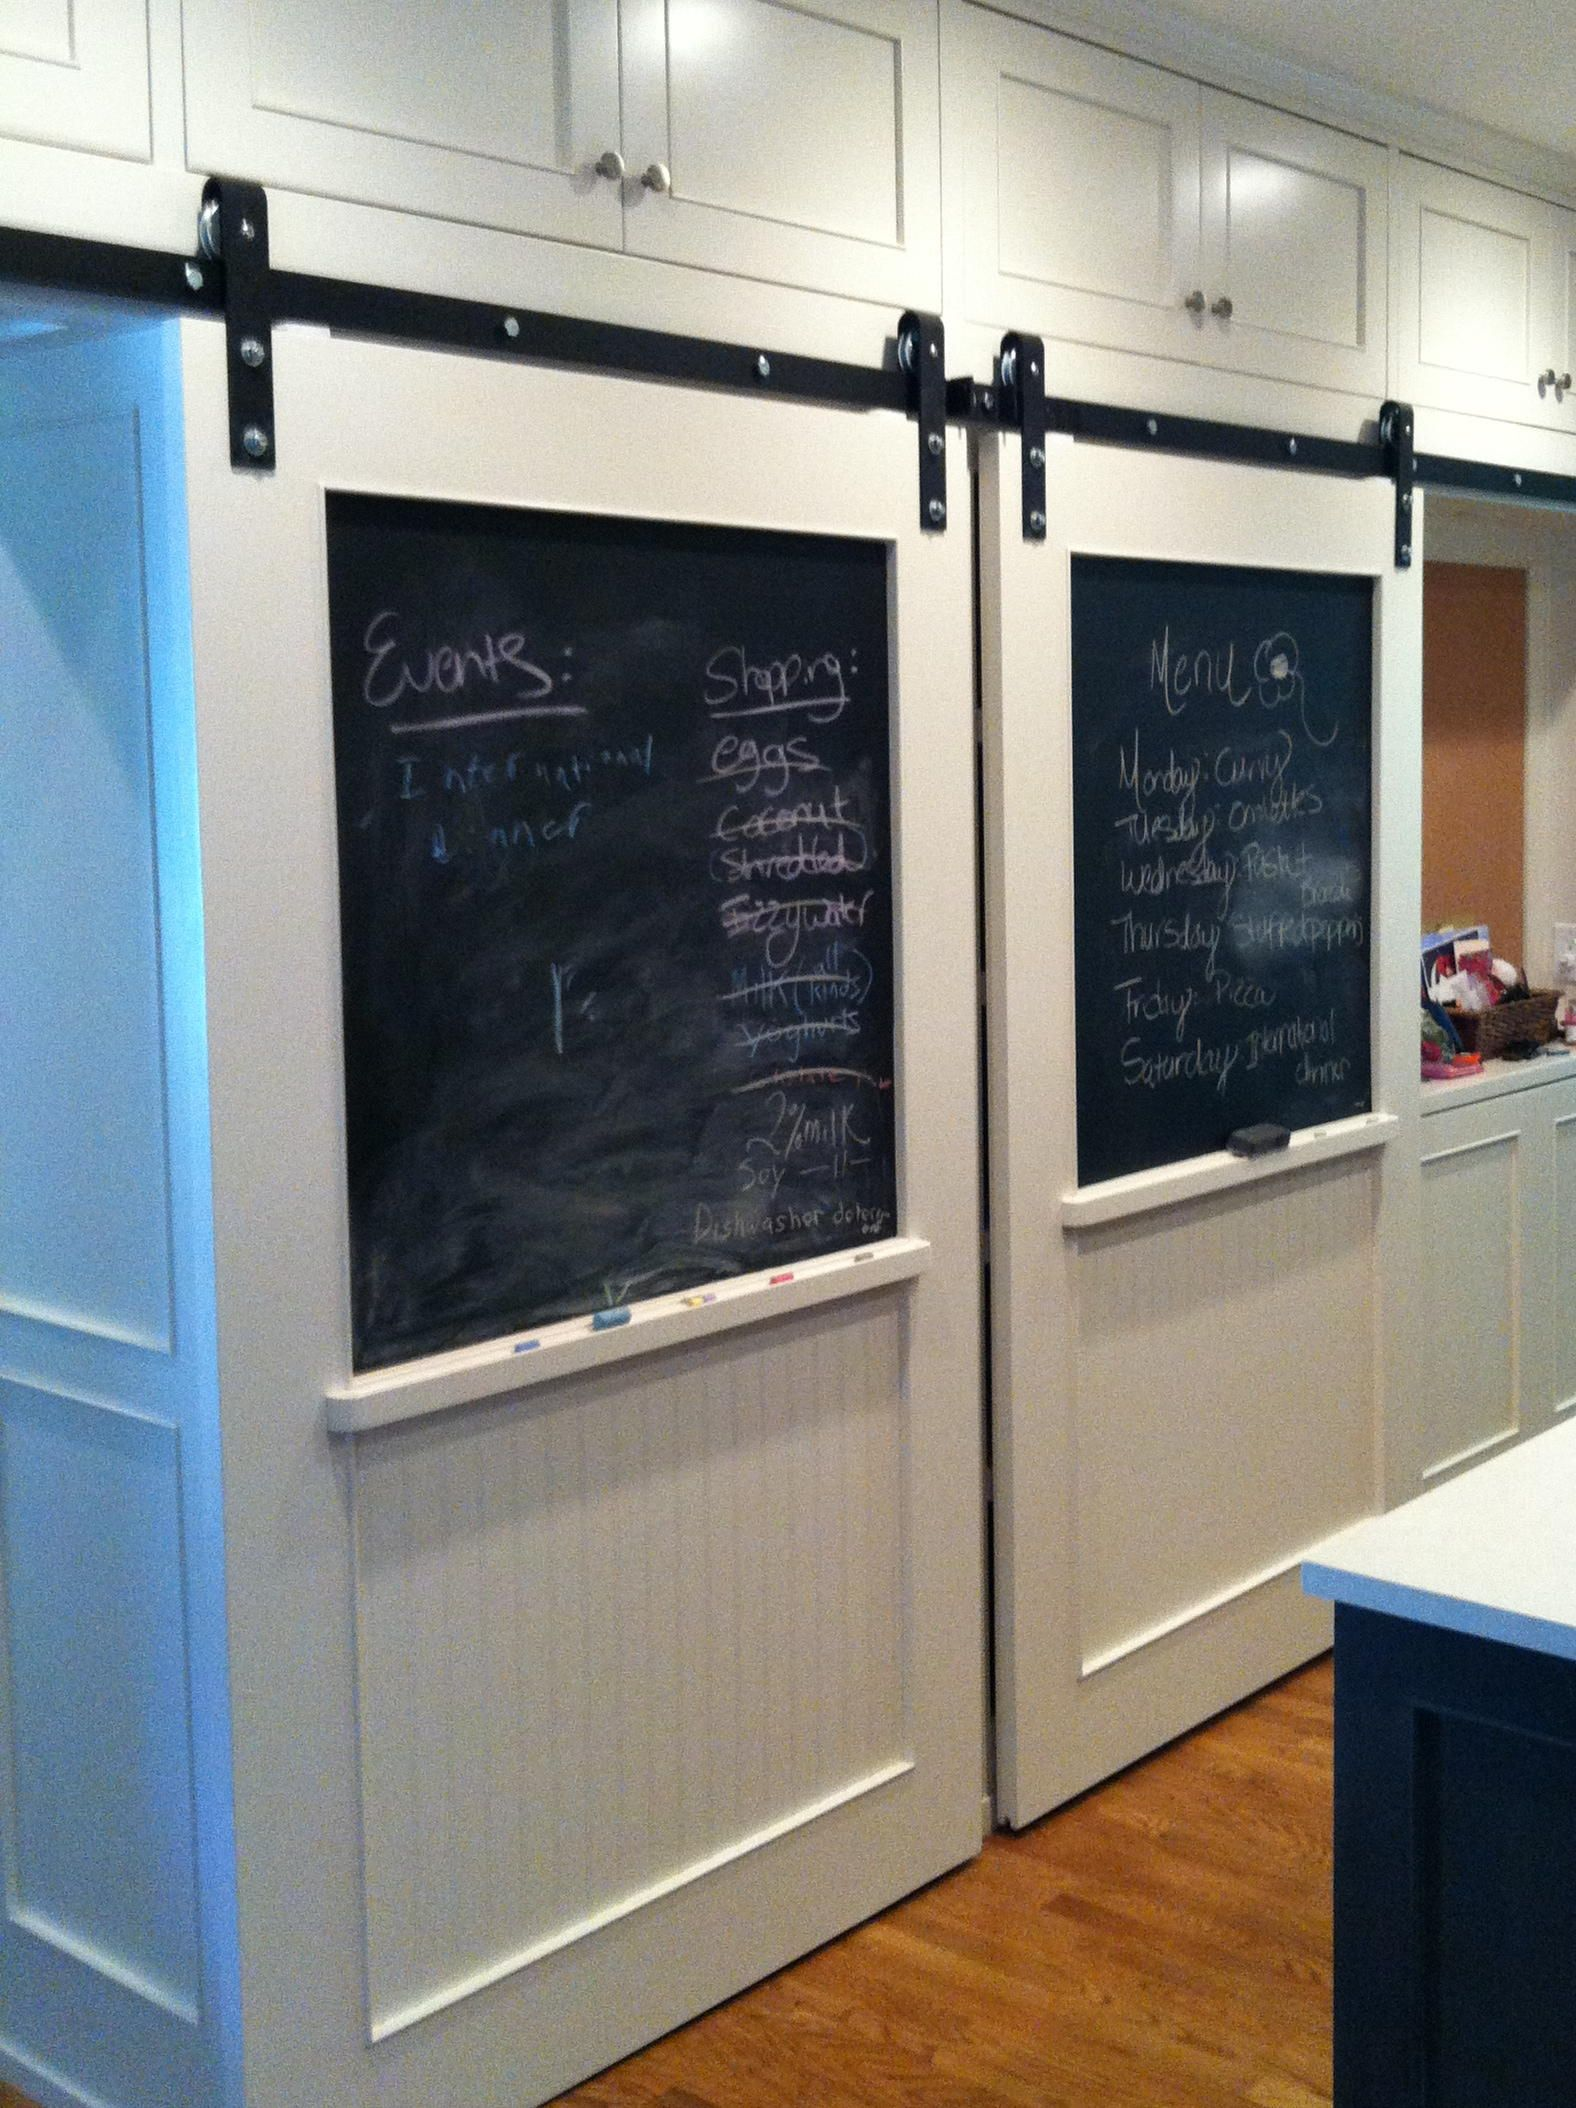 Beautiful Stylish Barn Doors With Chalk Board Could Put Anything In The Chalk Board Inset Area Barn Doors Sliding Barn Door Handles Barn Door